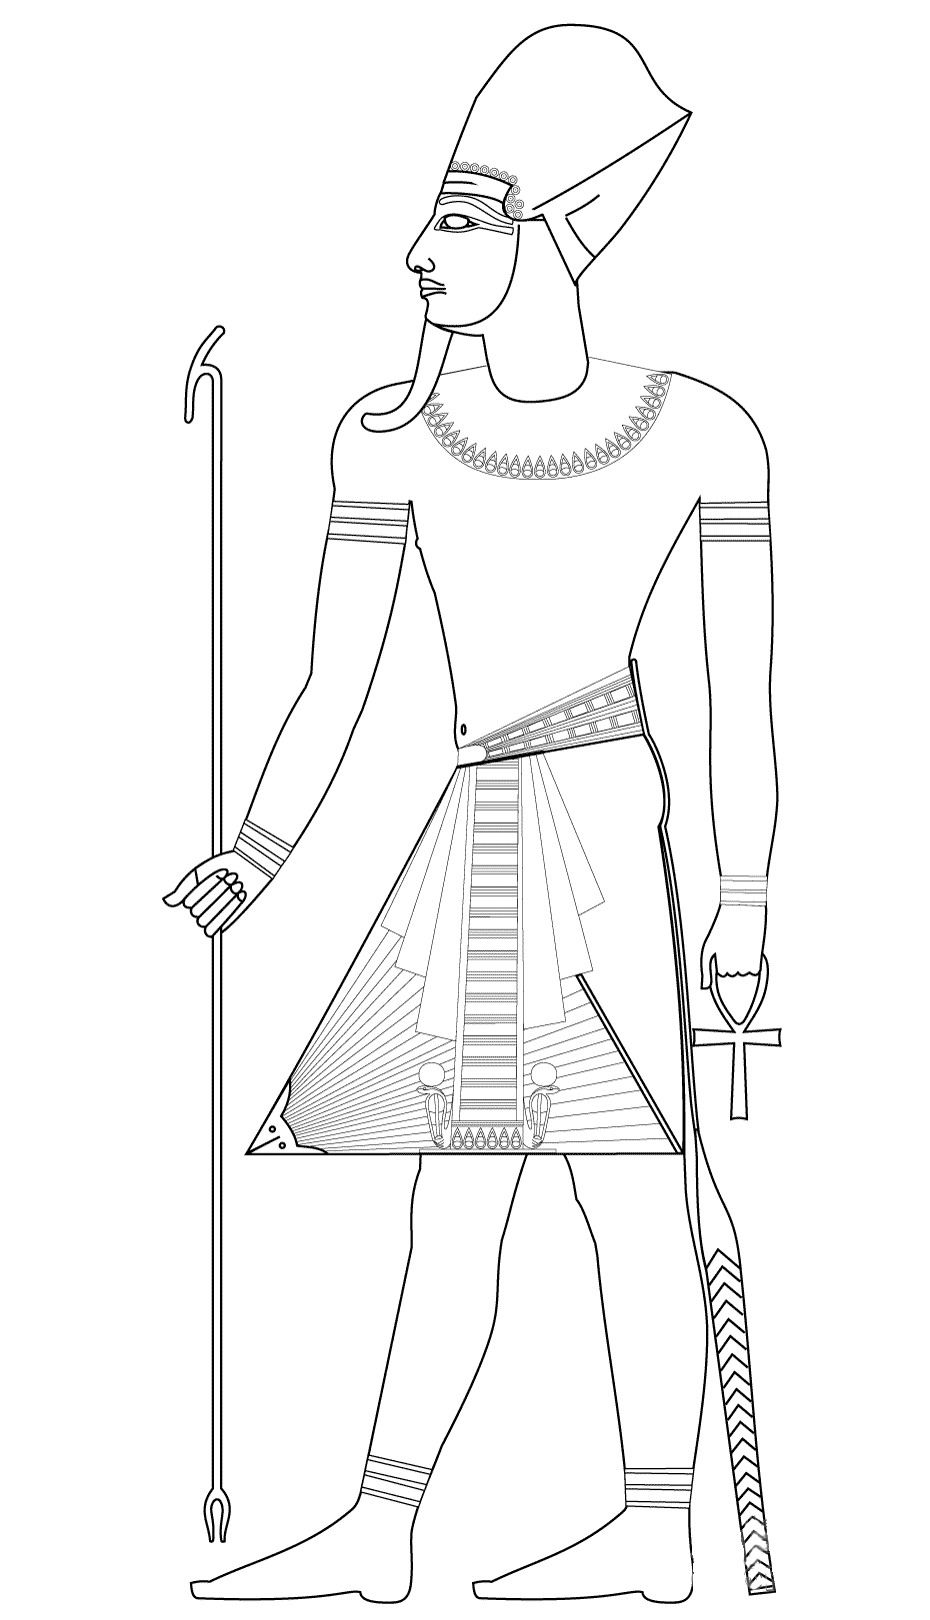 Egypt to color for children - Egypt - Coloring pages for kids